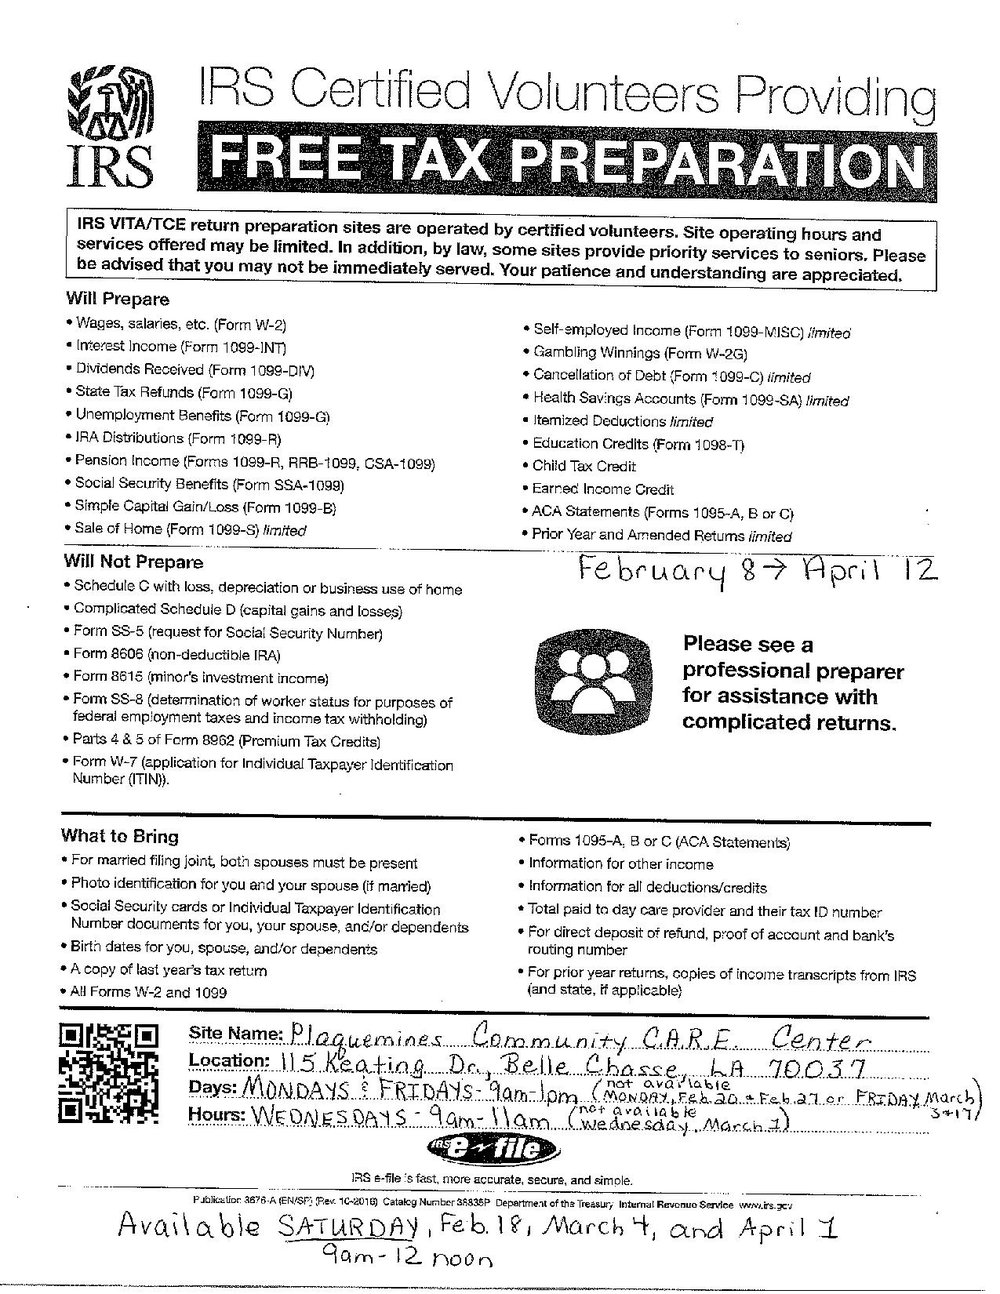 Free tax preparation plaquemines community care centers please see the attached flyer for more information including what documents should be brought with the person hen the walk in for this free service falaconquin